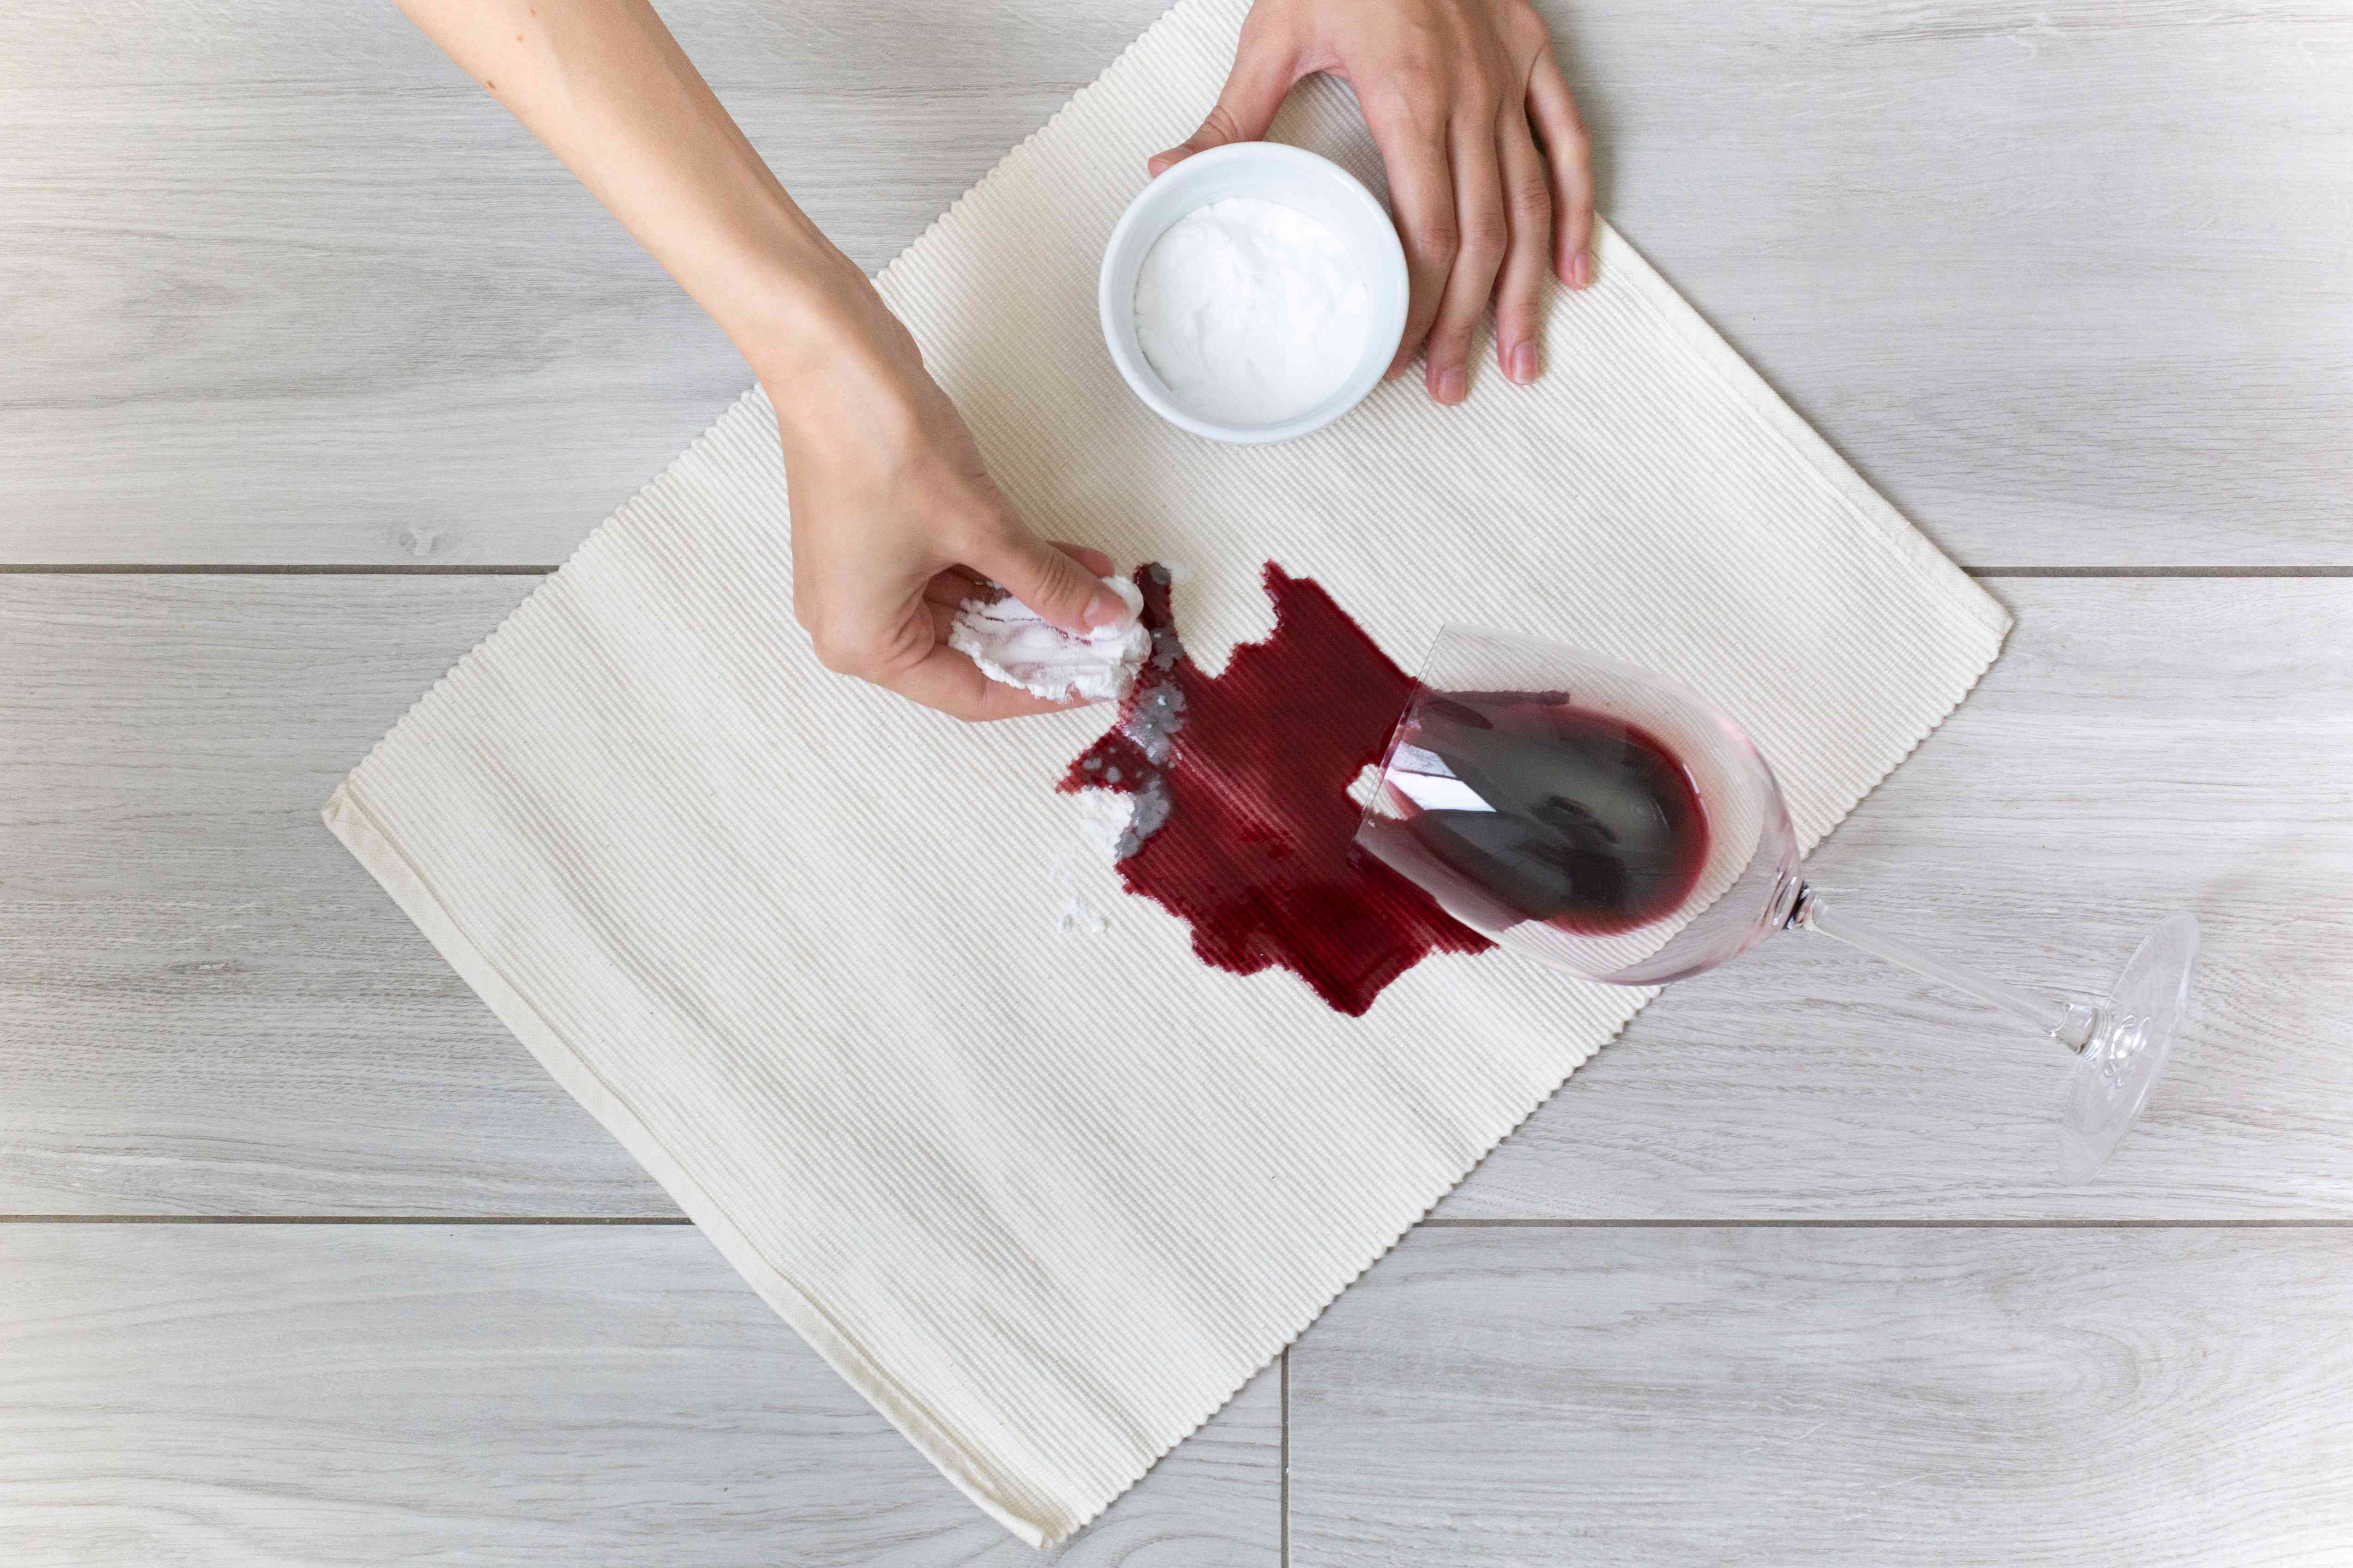 baking soda used to treat red wine stains